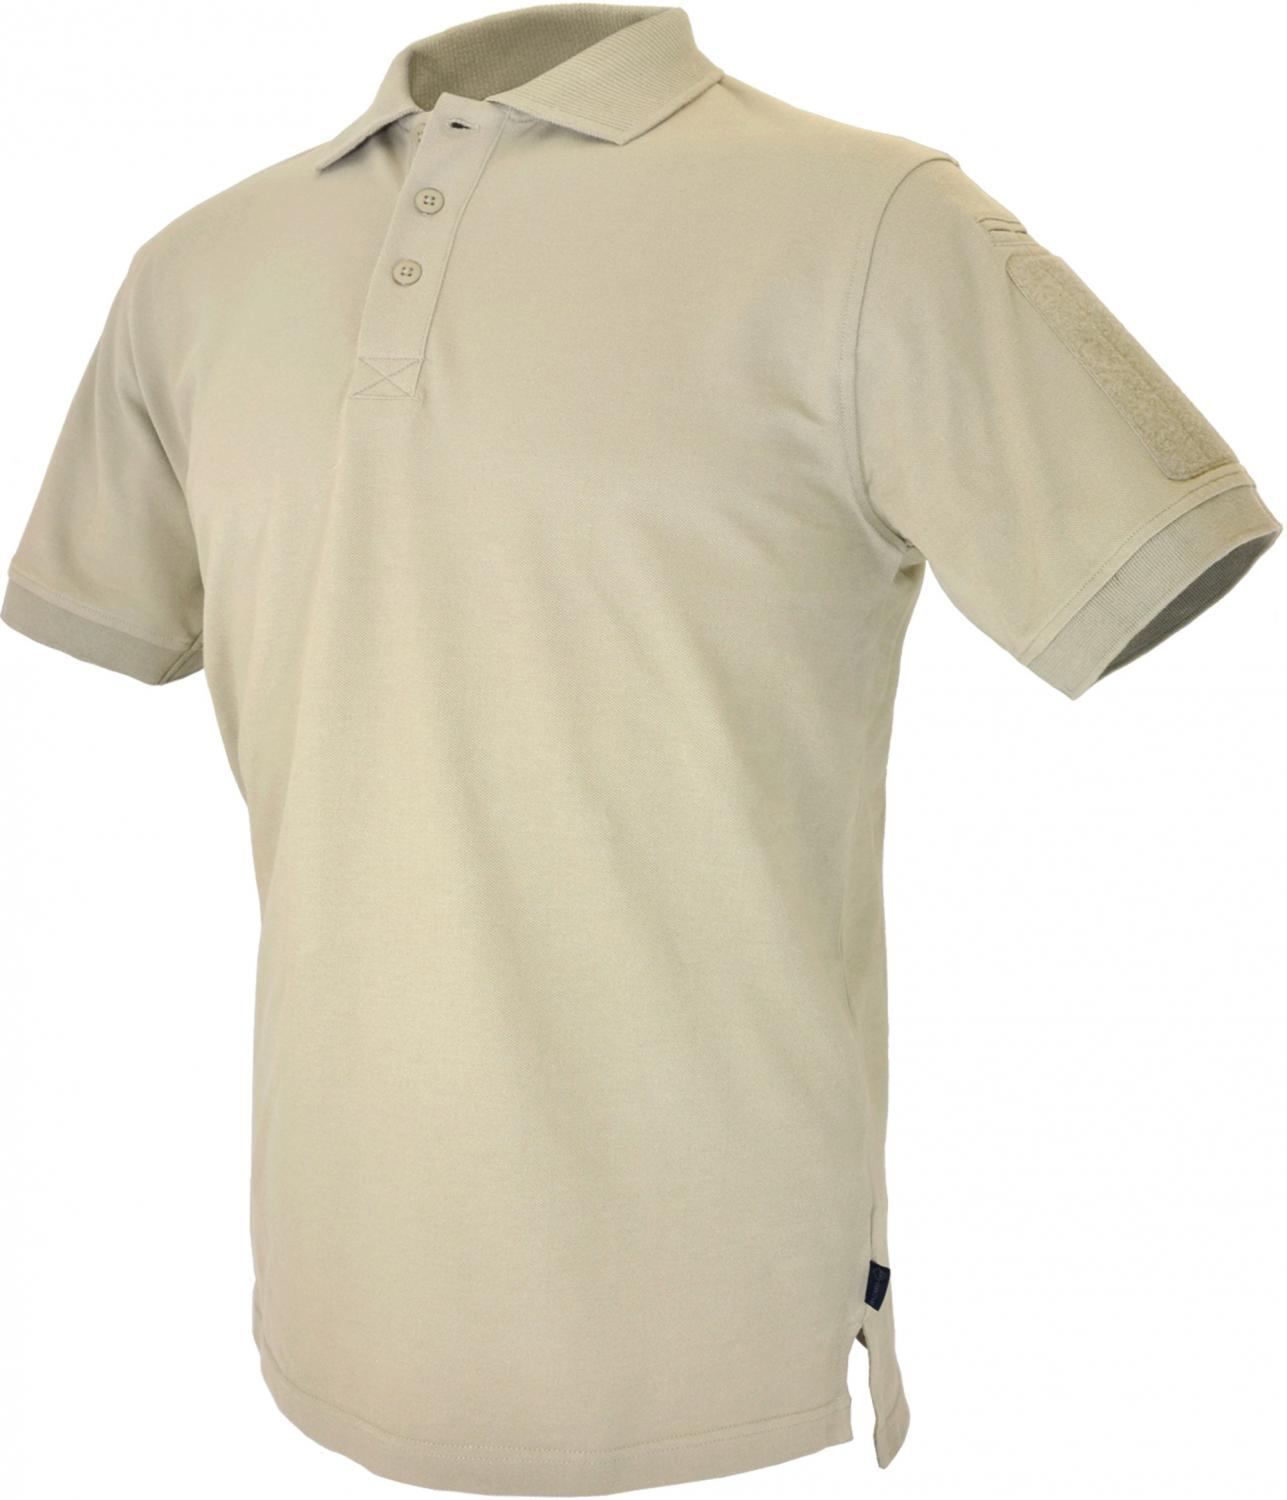 Hazard 4 QuickDry Undervest Plain Front Battle Polo, Tan, X Large